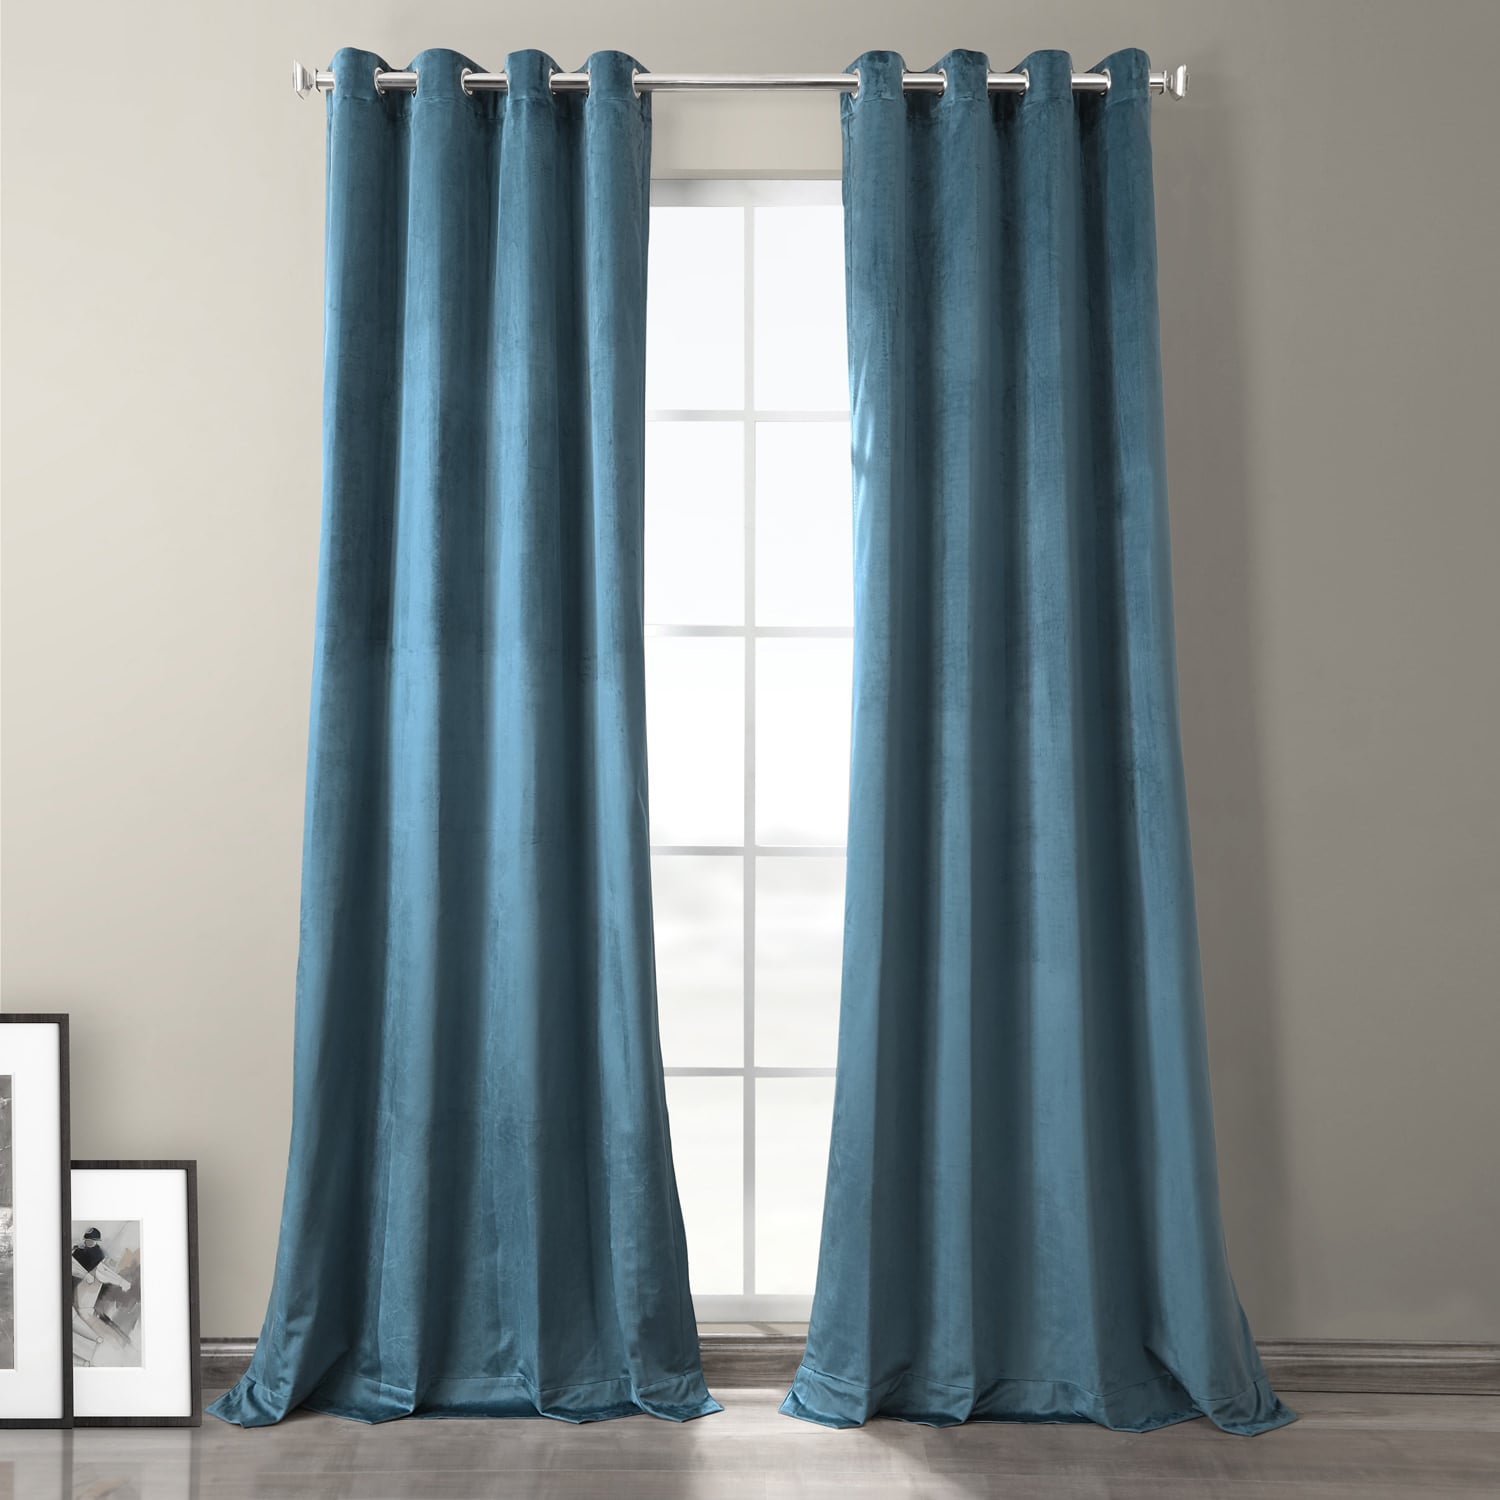 Caspian Blue Plush Velvet Hotel Blackout Grommet Curtain